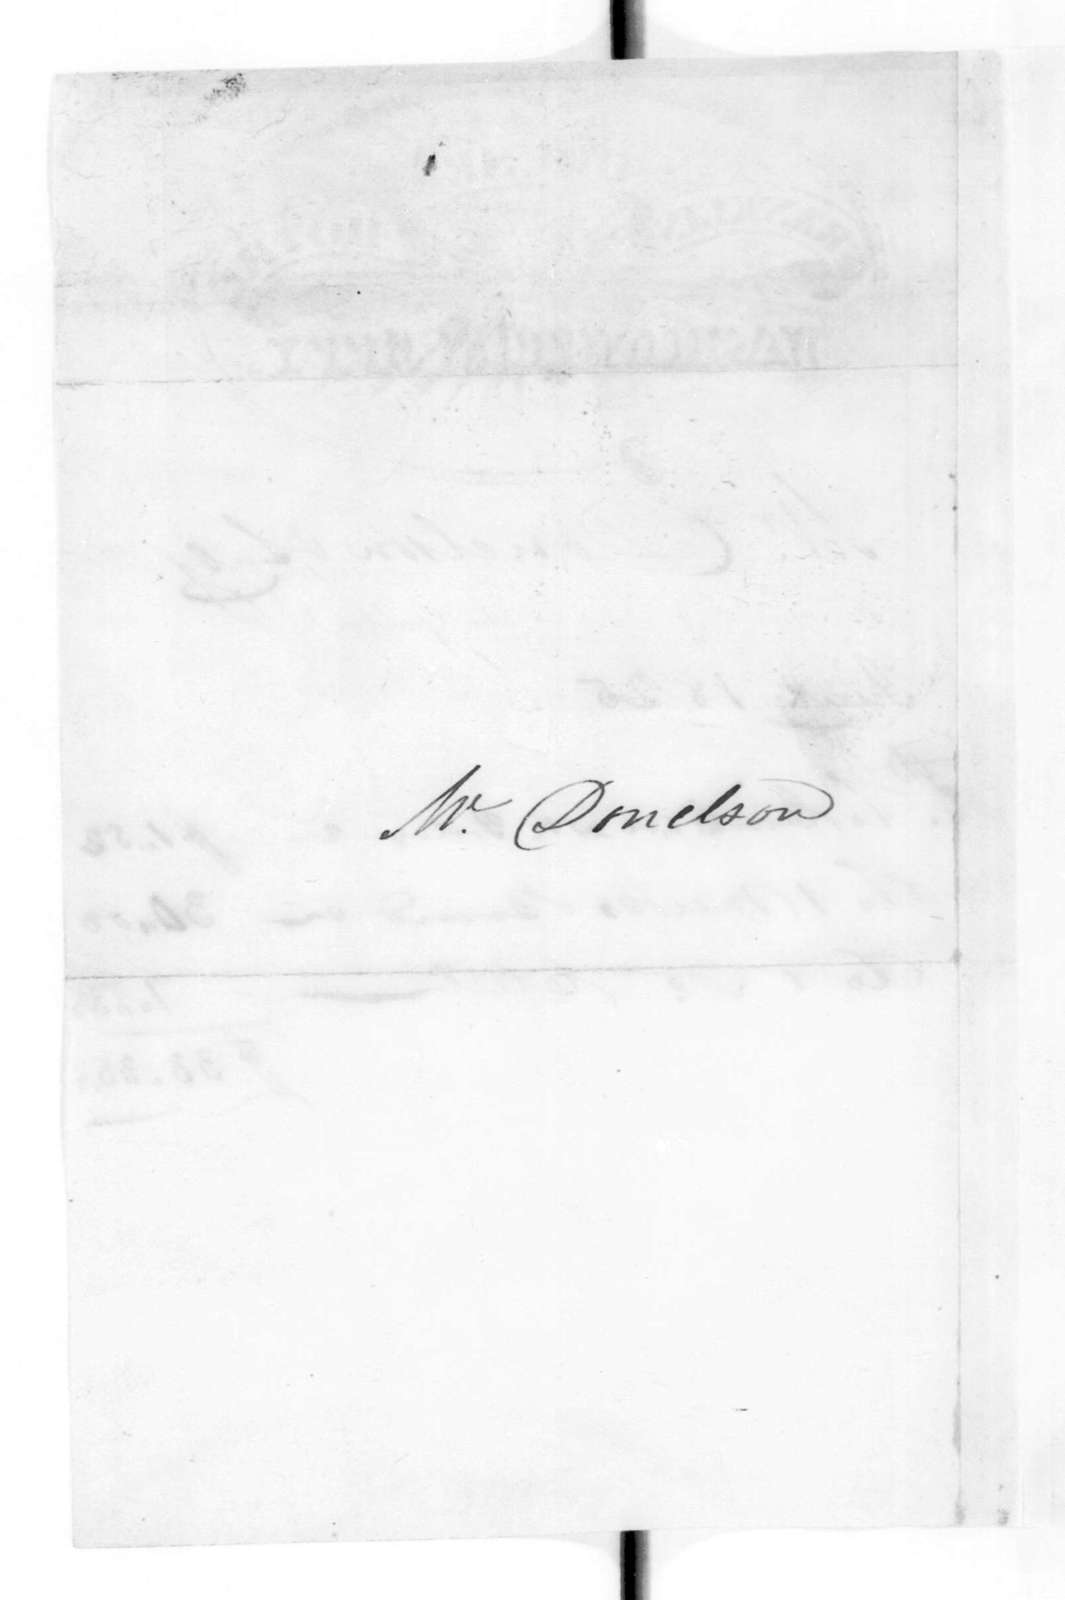 Franklin House Hotel to Andrew Jackson Donelson, January 24, 1825